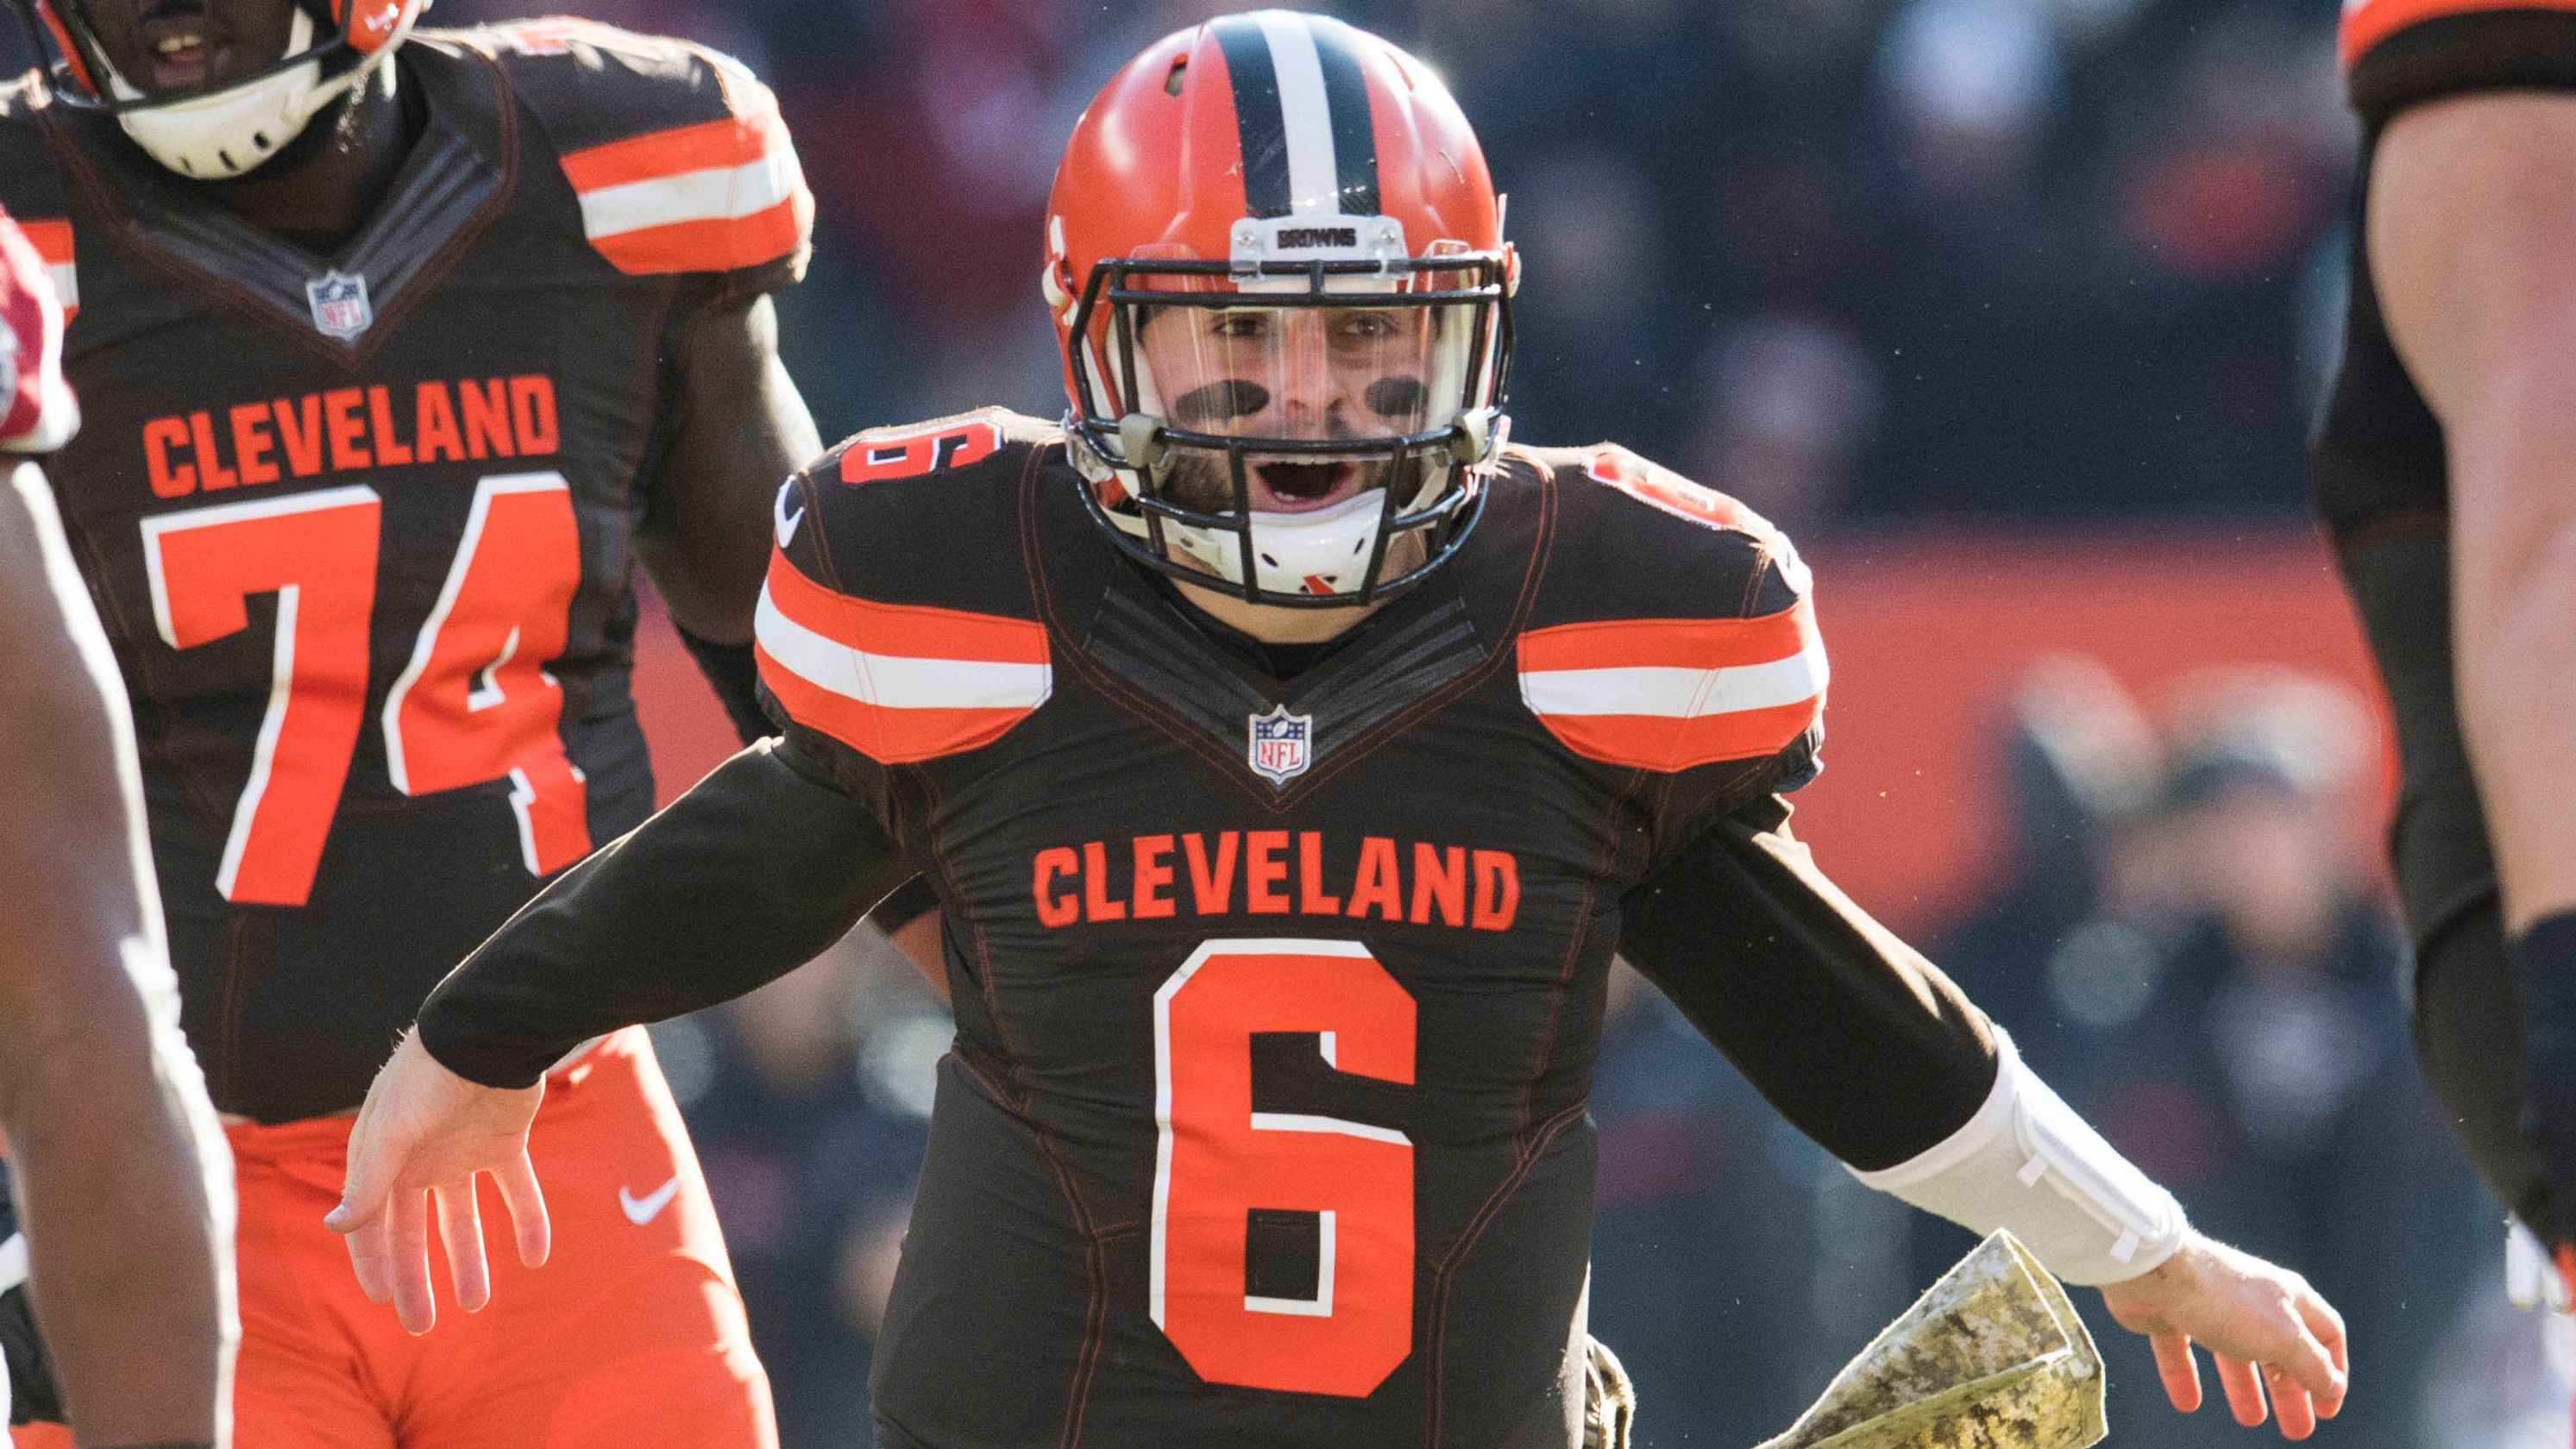 a0f17f02e Cleveland Browns  3 Best Performances from Week 14 Win vs. Panthers - NFL  Analysis Network